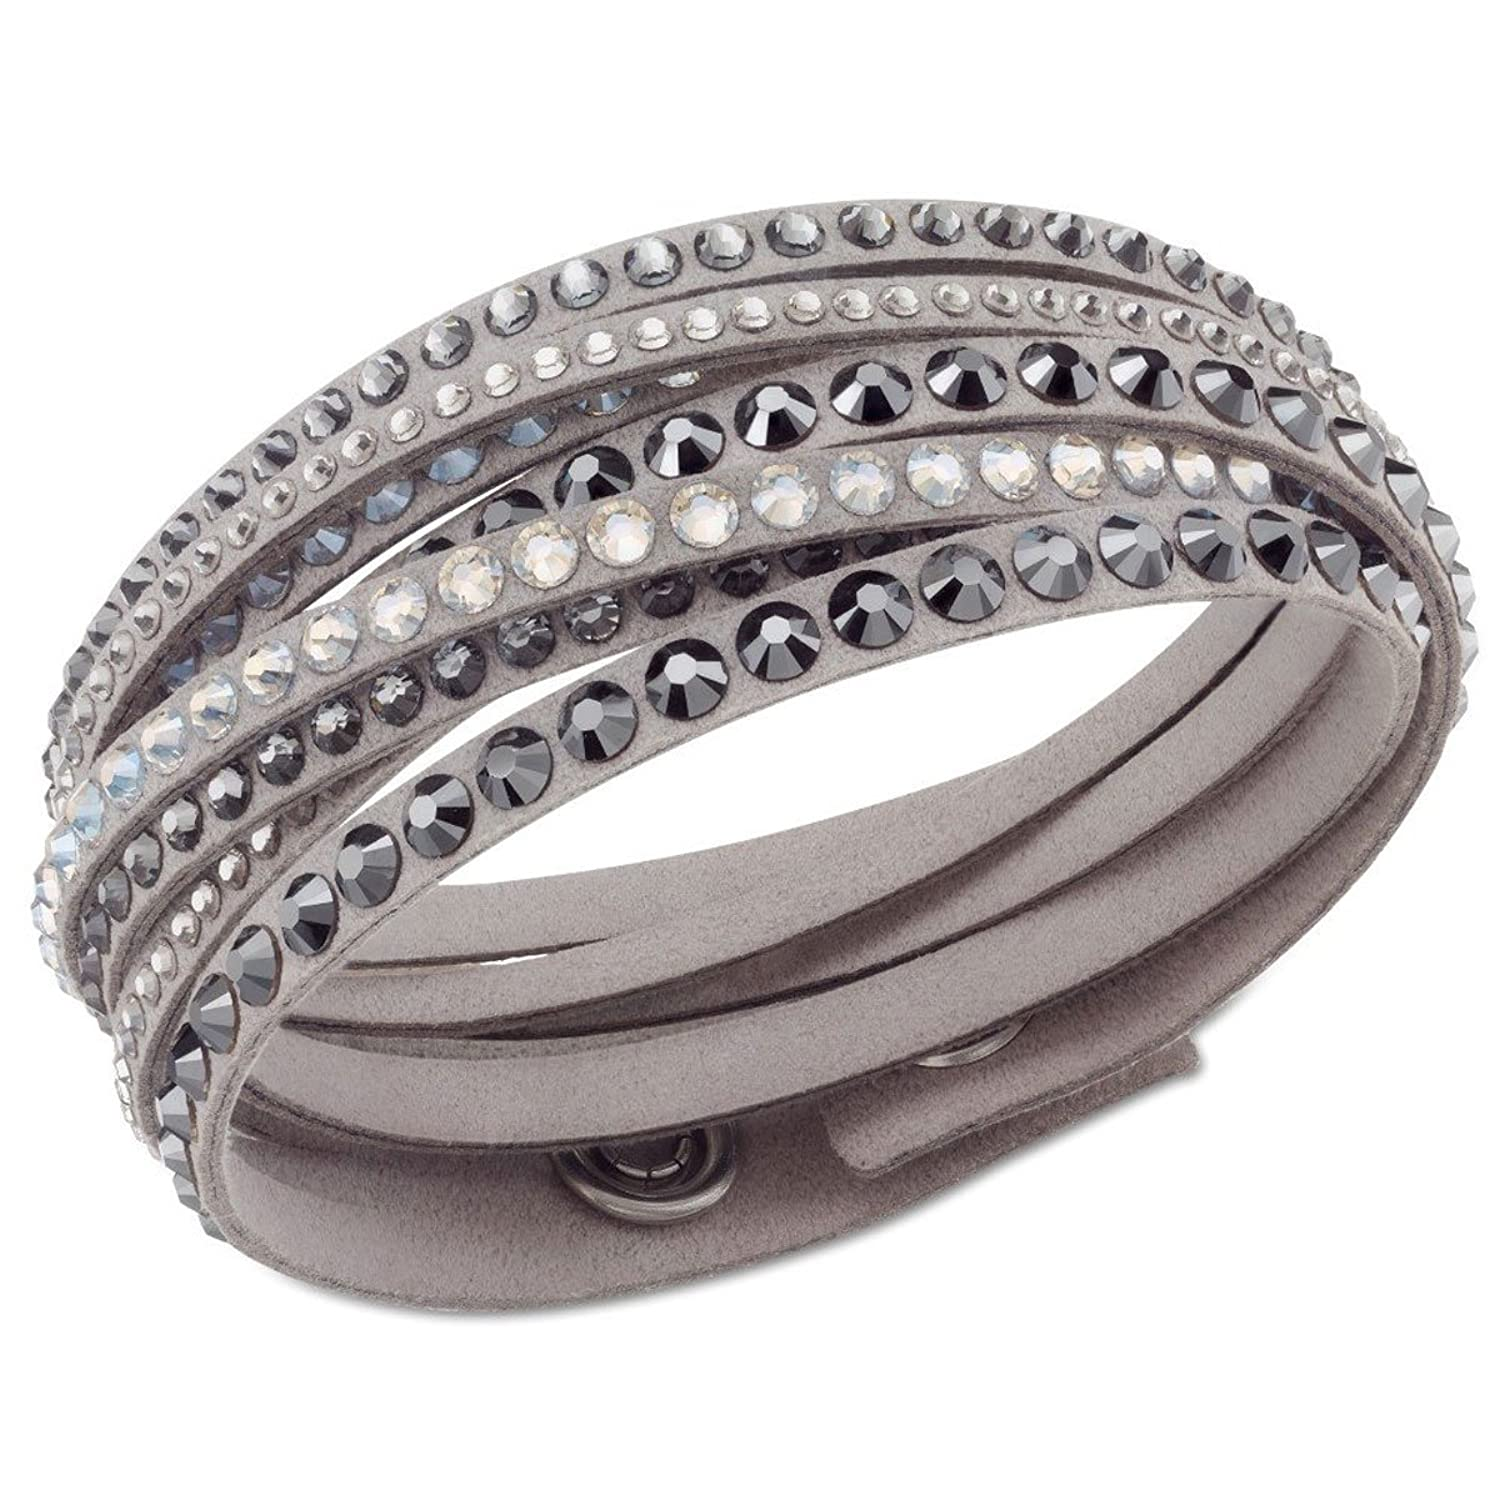 Swarovski JWSW5 , 5021033 Women\u0027s Fabric Wraps Gray Bracelet Amazon.co.uk  Jewellery